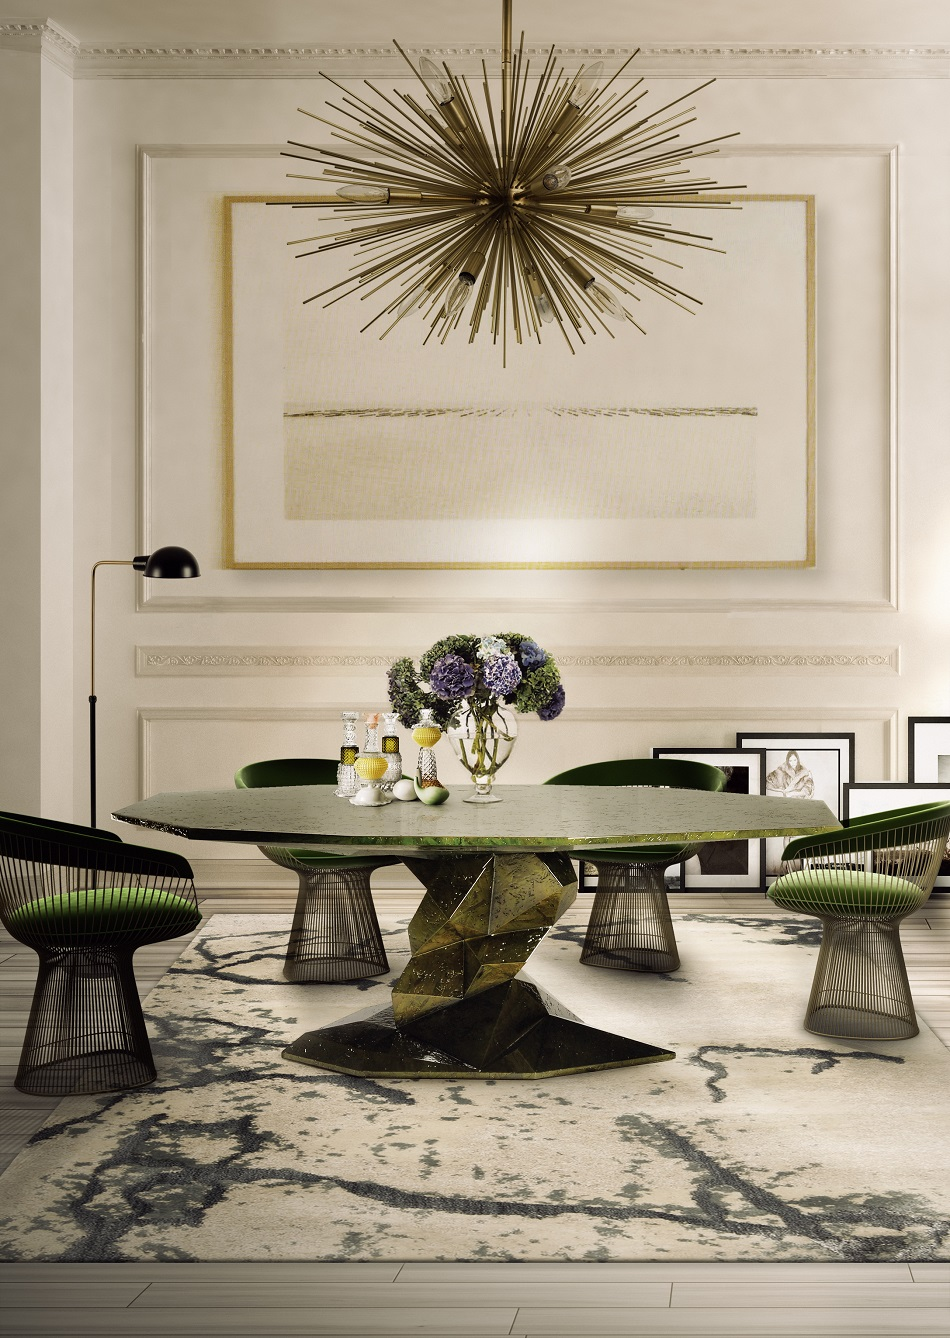 10 Majestic Dining Room Tables You Will Want To Have  Dining Room Tables 9 Majestic Dining Room Tables You Will Want To Have 10 Majestic Dining Room Tables You Will Want To Have5